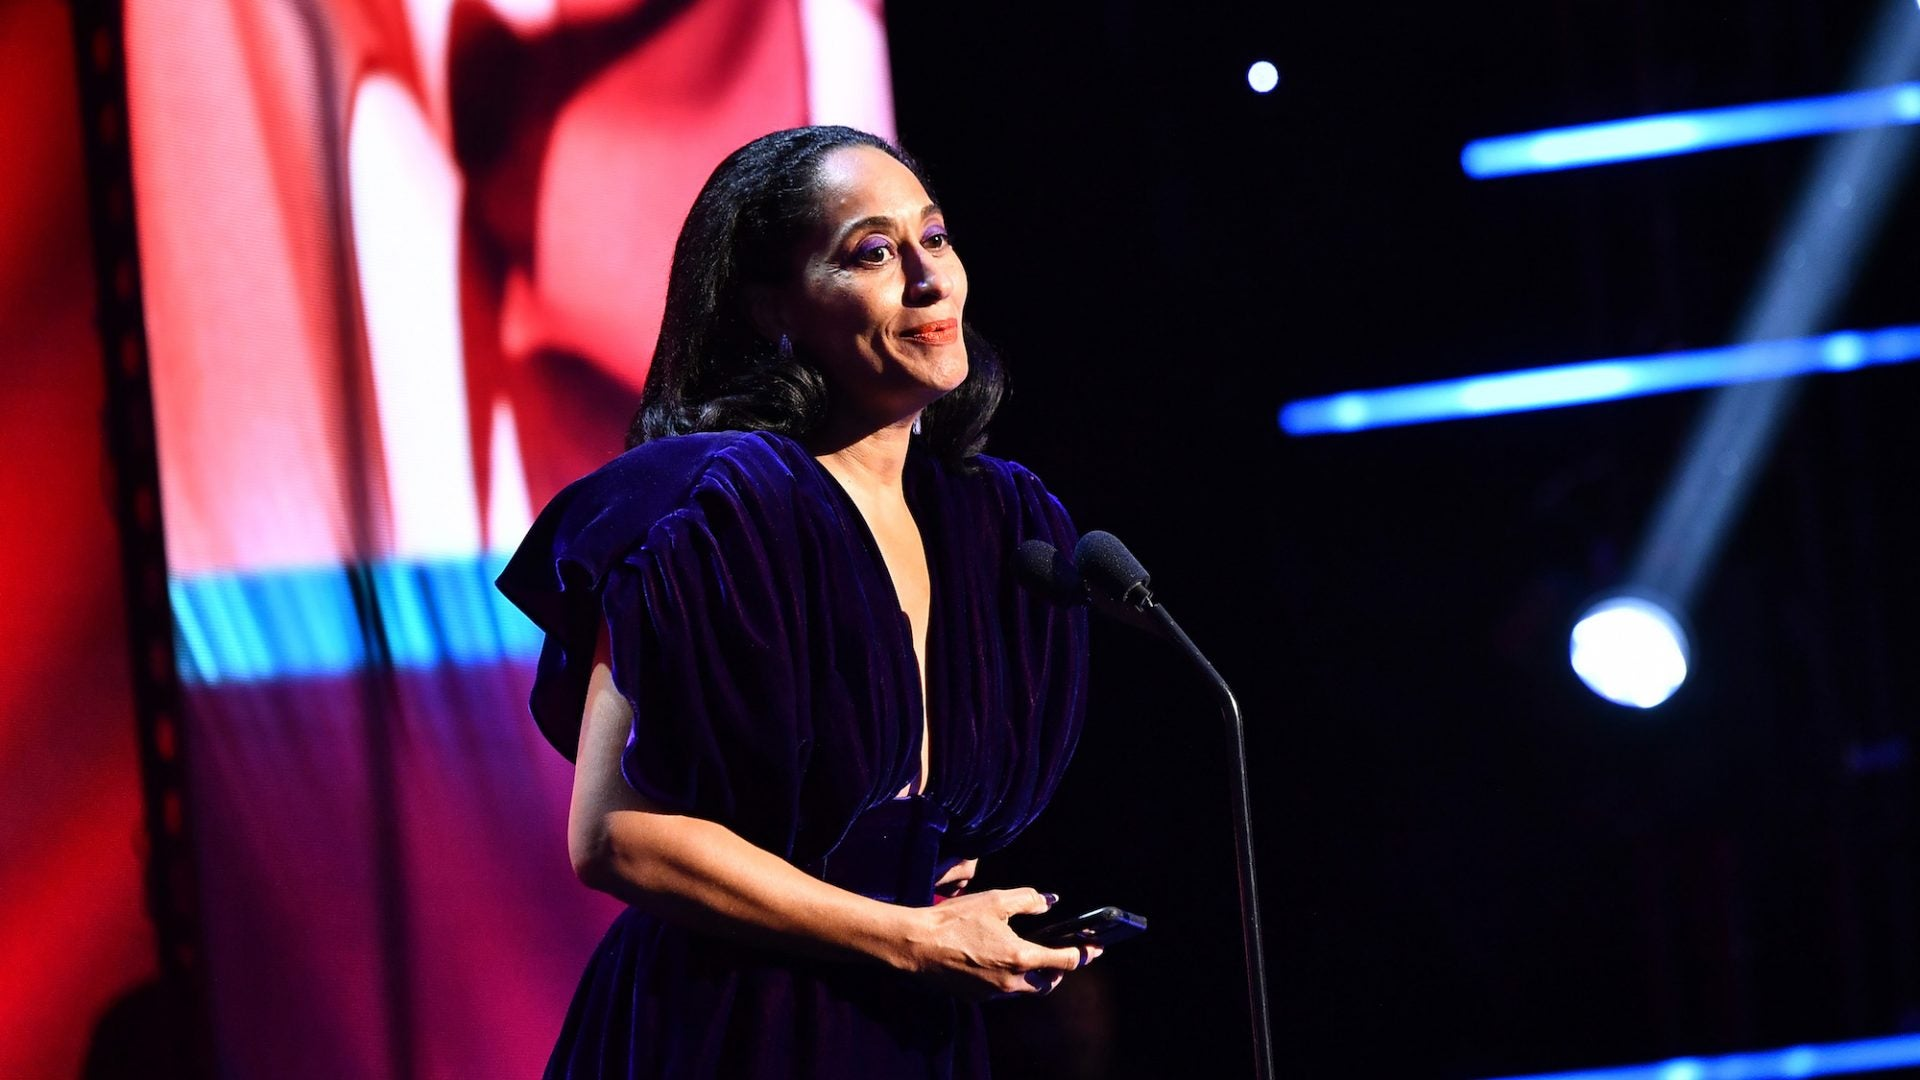 Tracee Ellis Ross Celebrates Powerful Women In NAACP Image Awards Speech